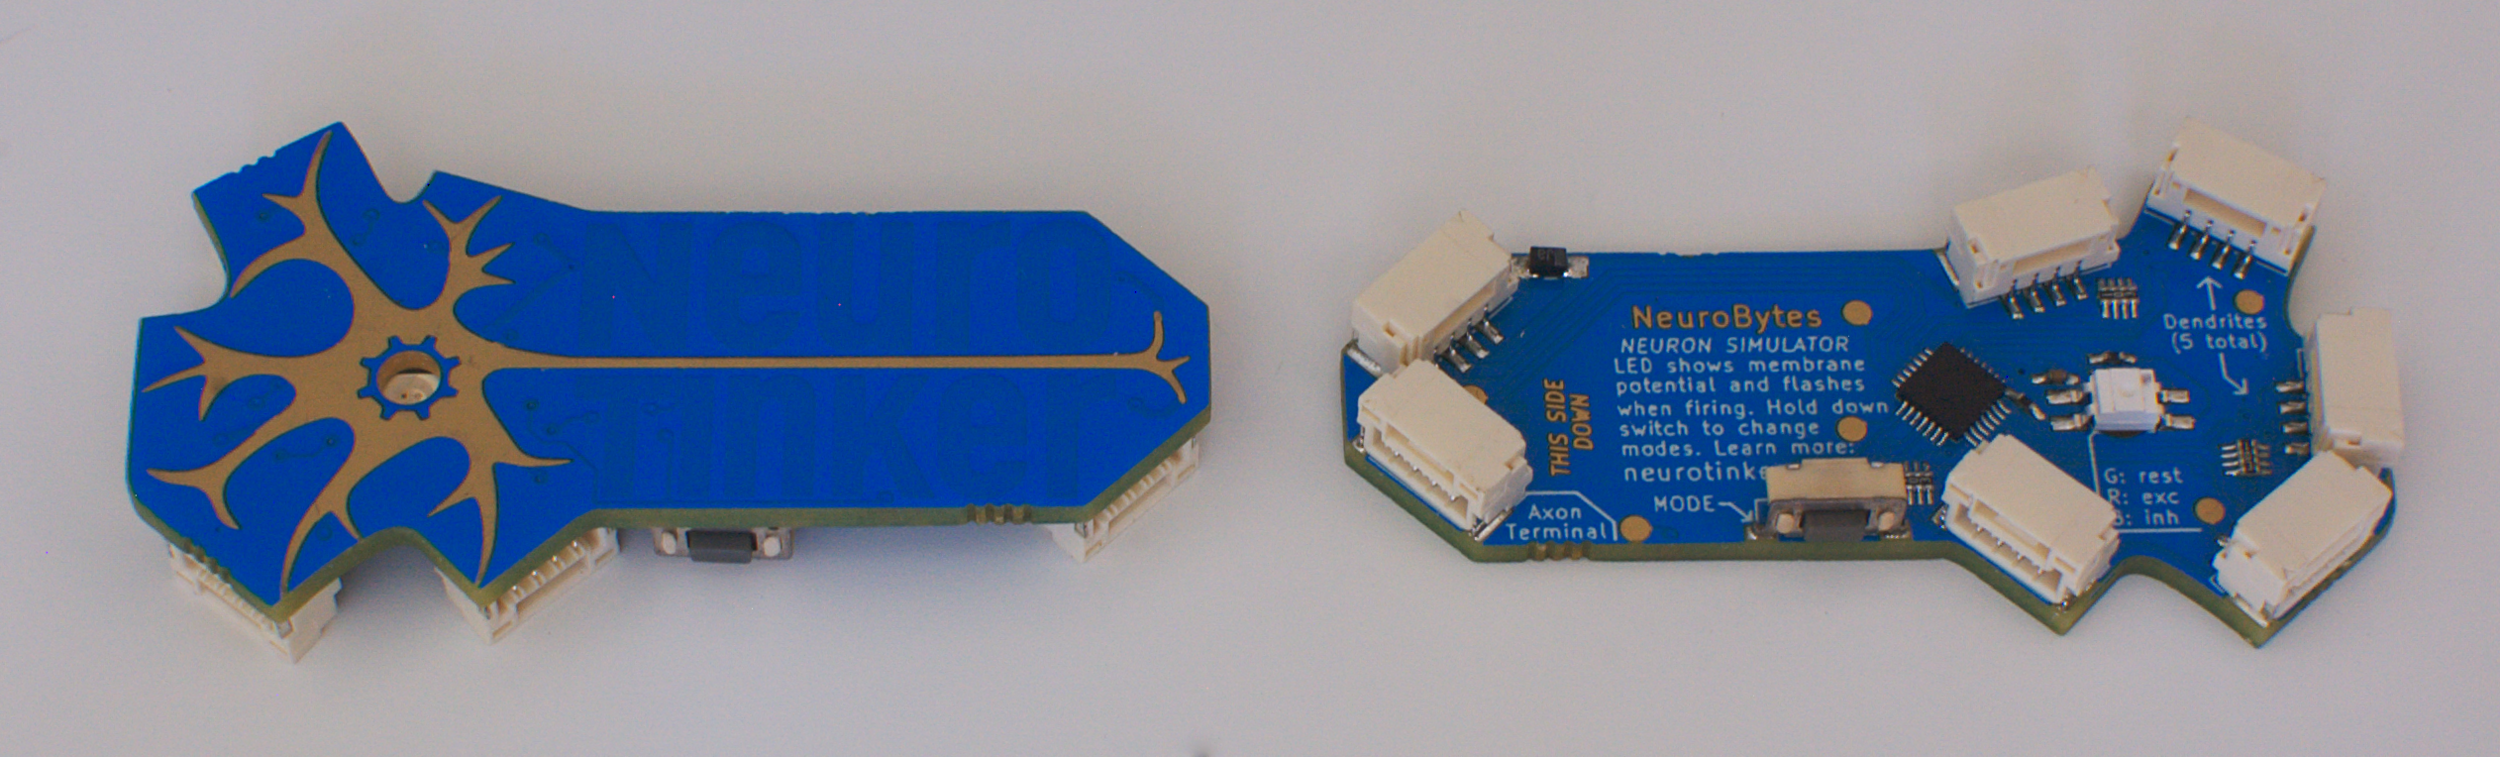 Two v0.8 boards, showing the front and back of the design. Mode switches! Bottom mount LEDs! JST GH connectors! Crazy routed PCB design! So many changes.